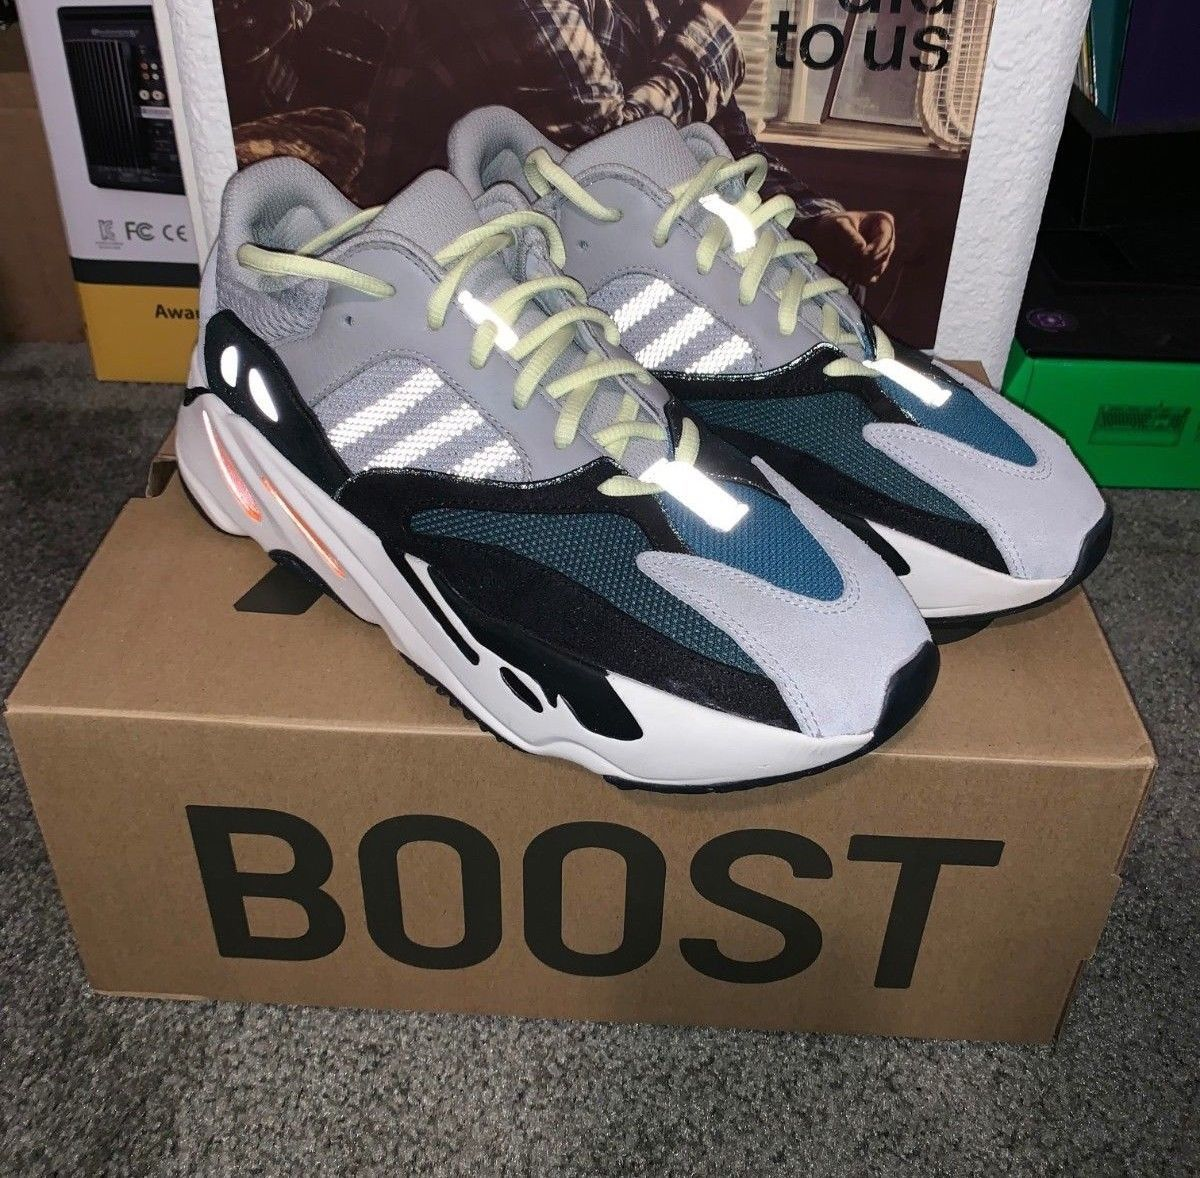 251ad21f50dfd Adidas yeezy 700 only $46 in amazon.com and get one free gift ...